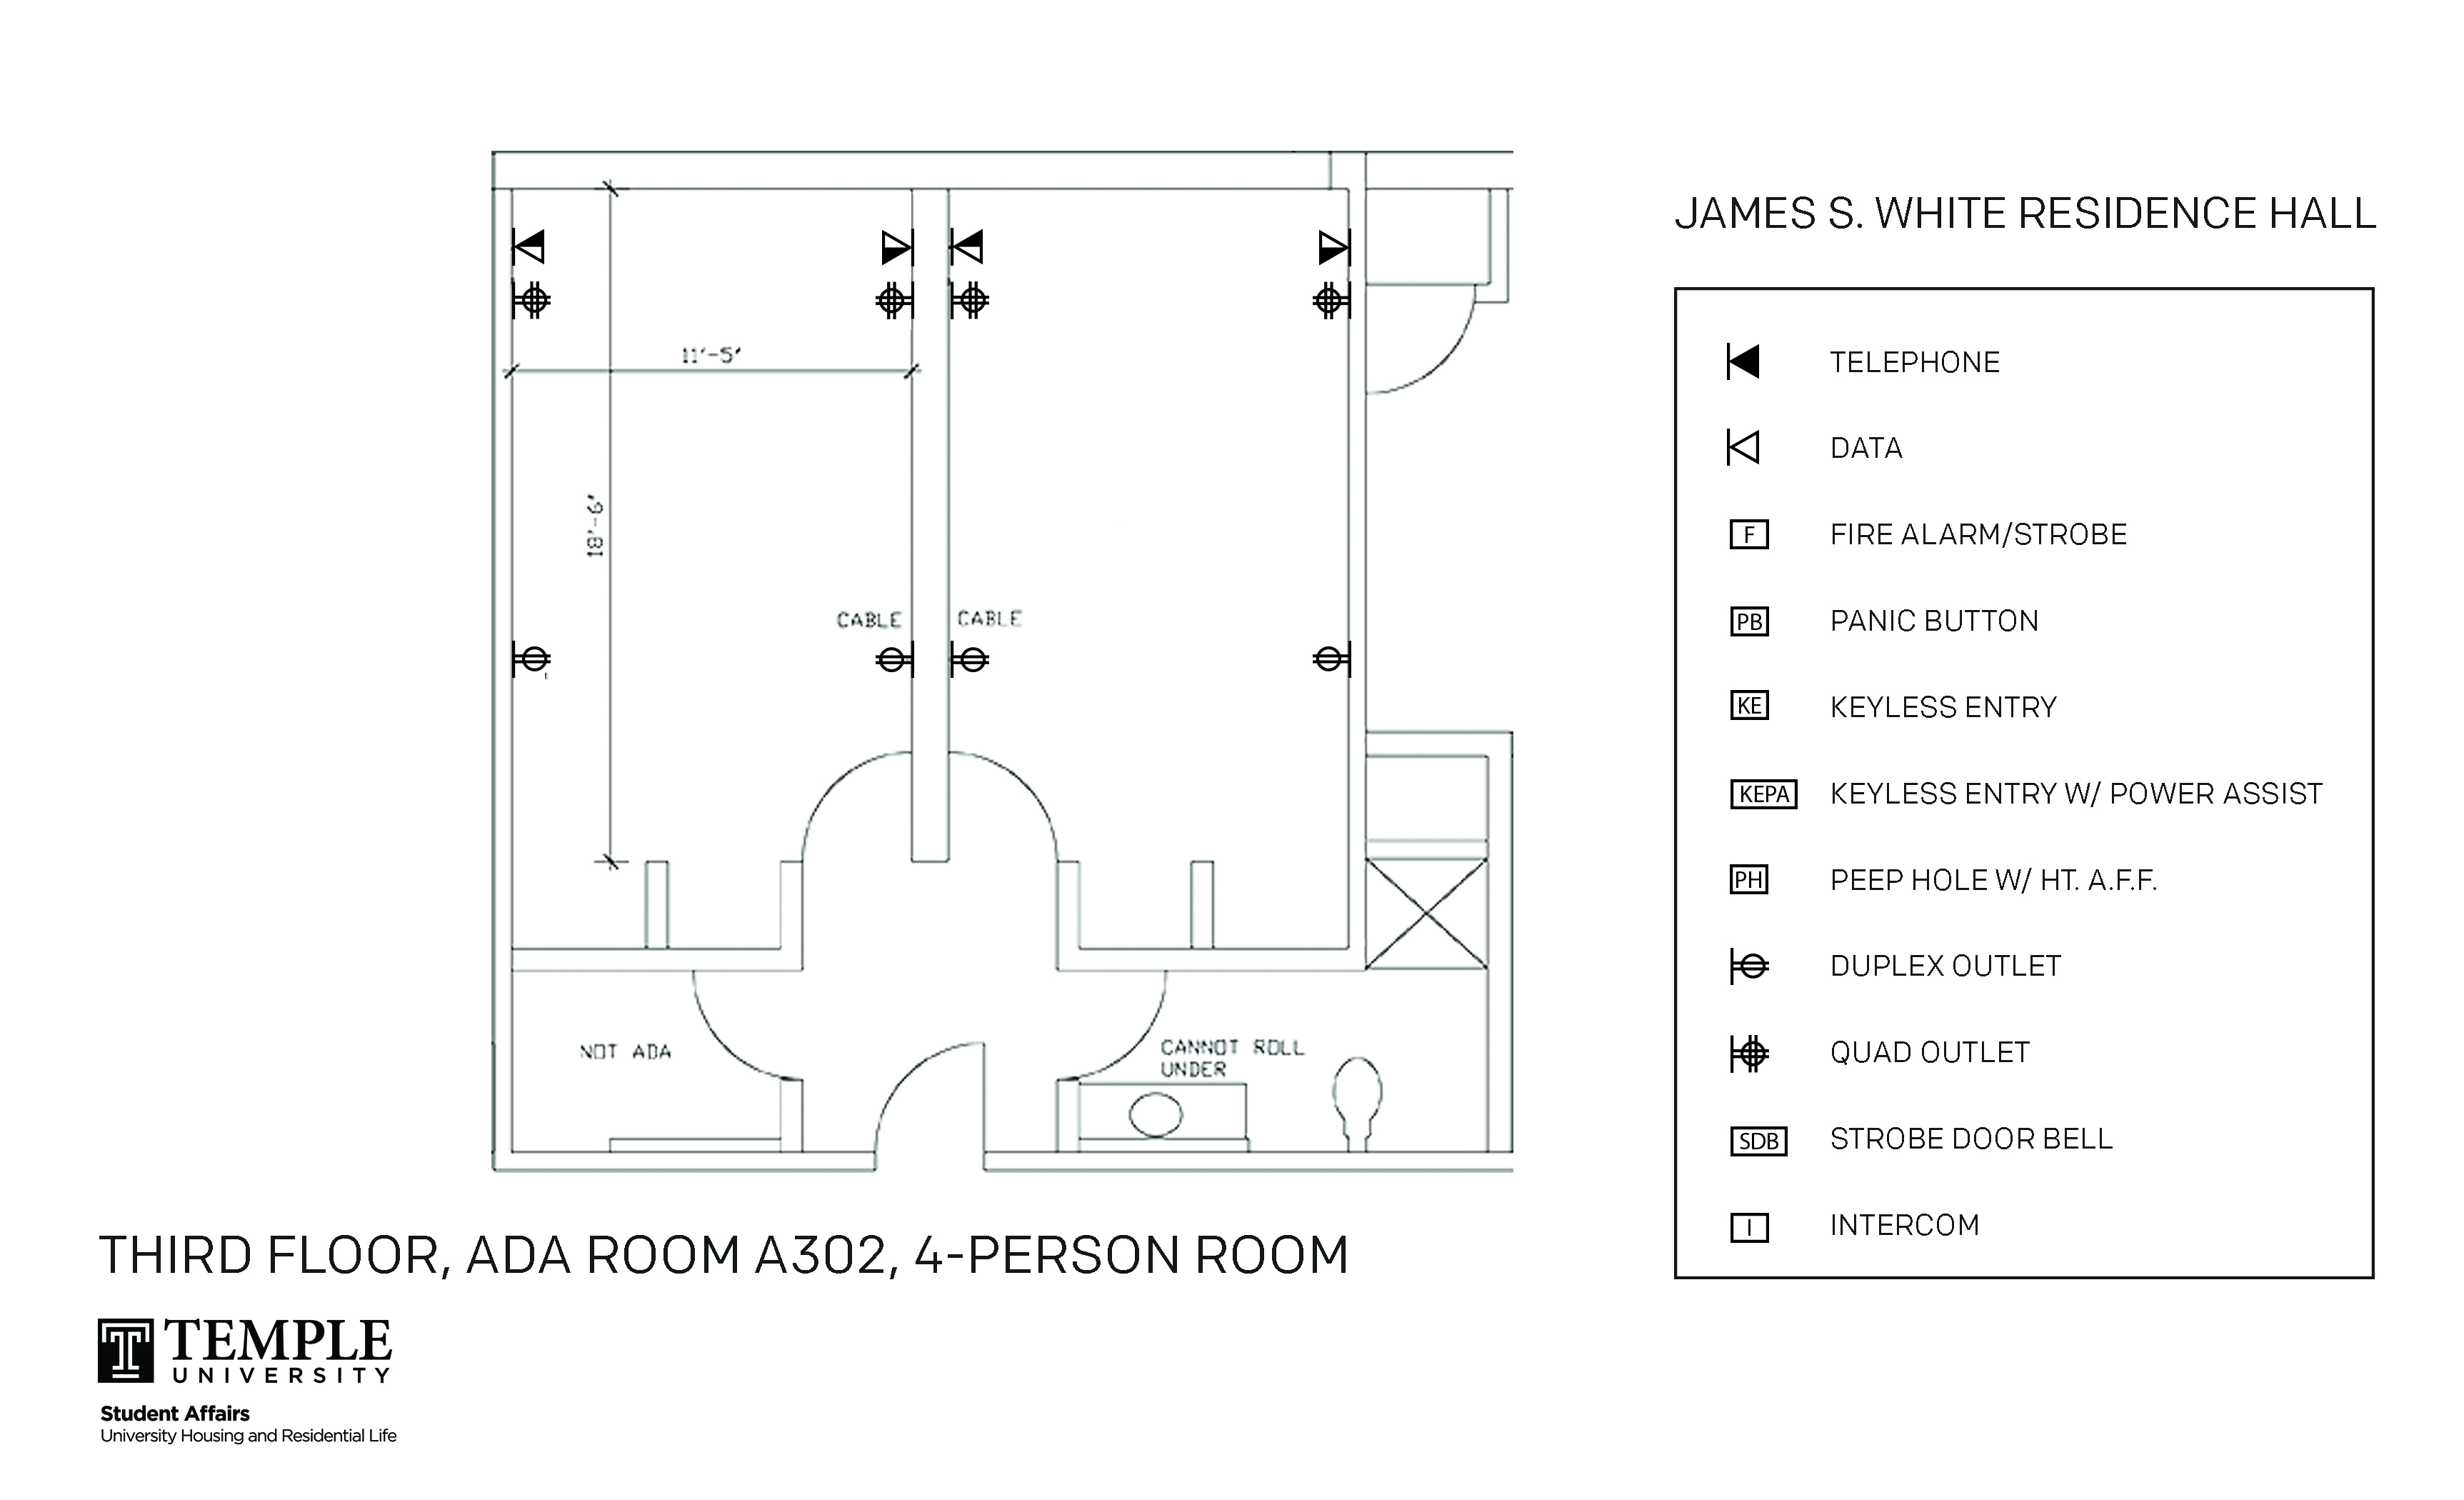 Accessible Room Diagrams: 4 person, 2 bedroom Suite - A302